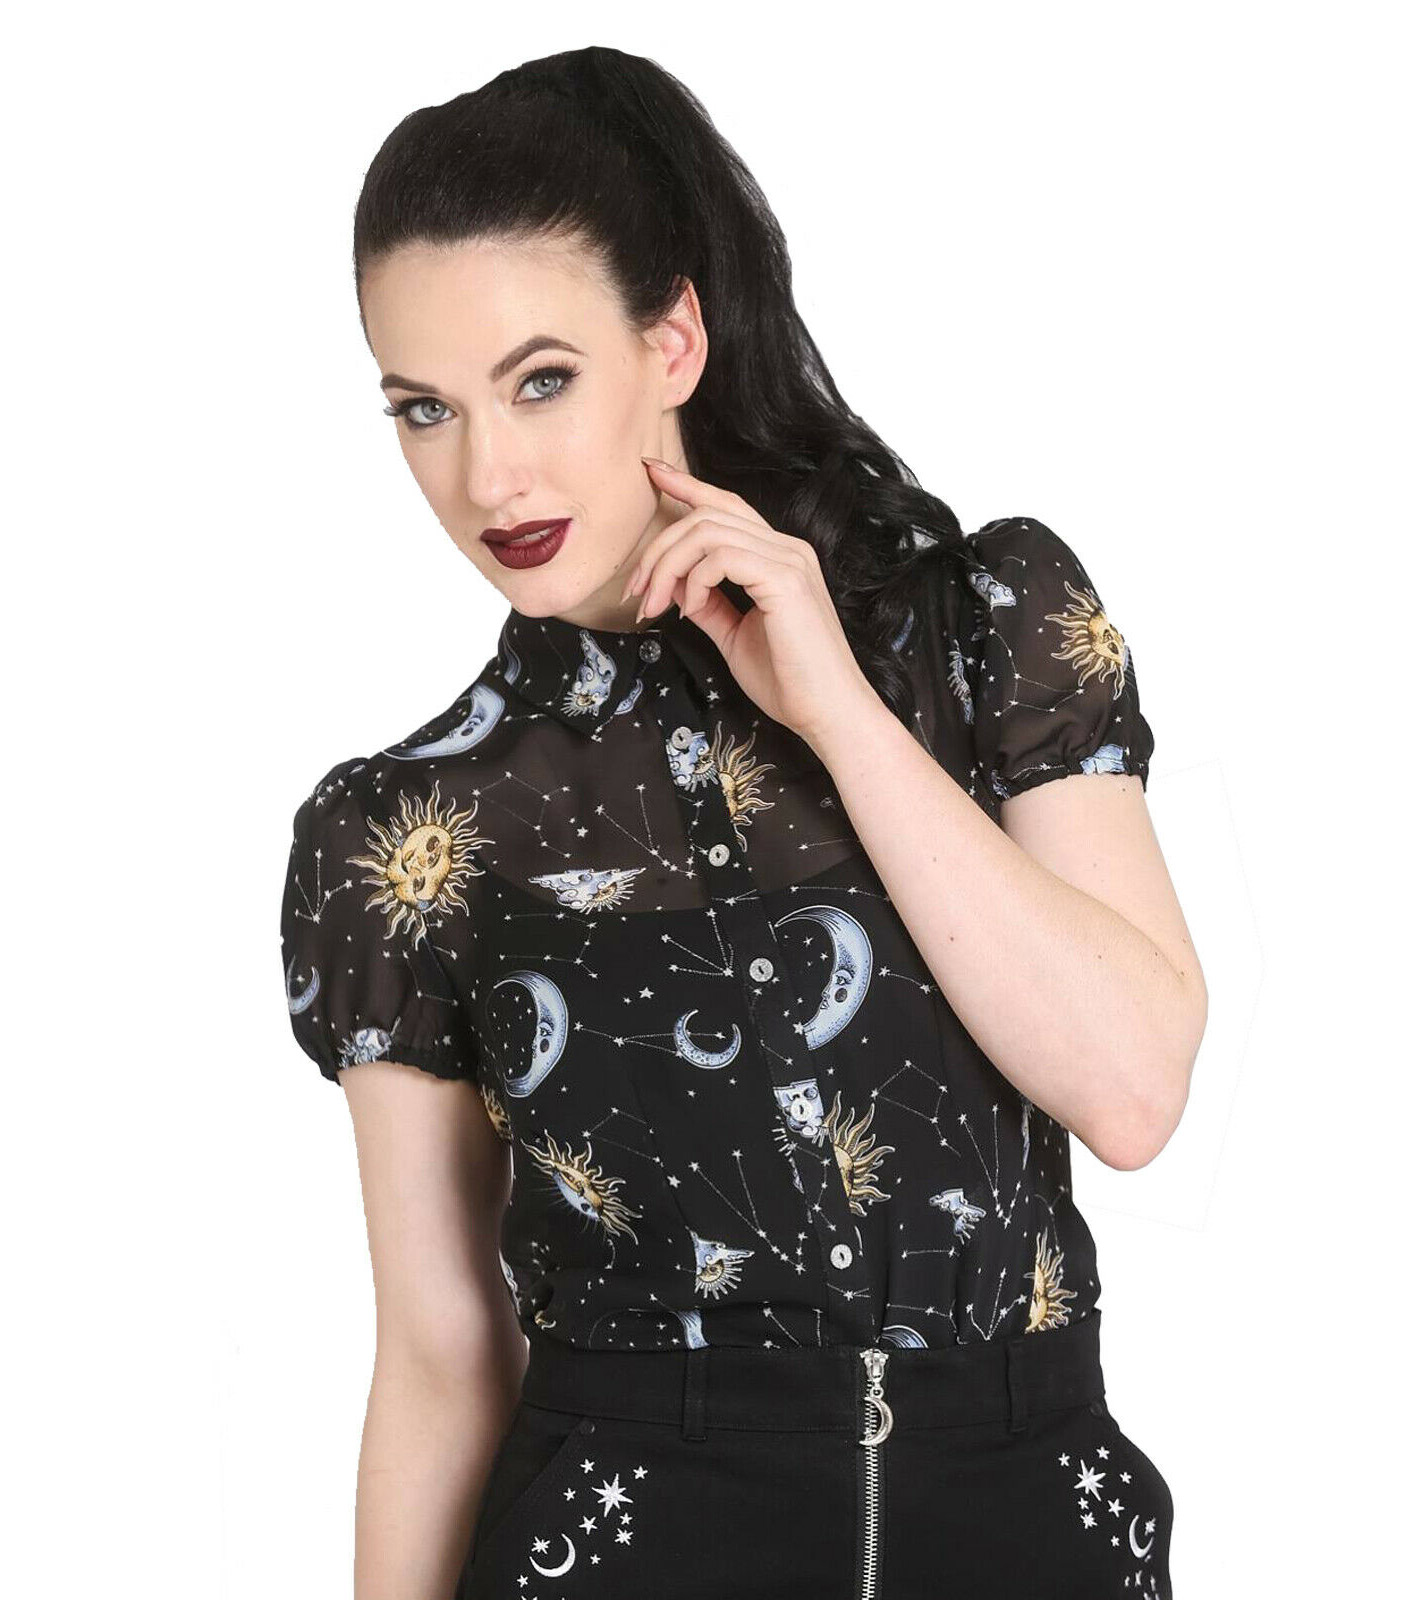 Hell-Bunny-50s-Shirt-Top-Gothic-Black-Sun-Moon-Stars-SOLARIS-Blouse-All-Sizes thumbnail 33